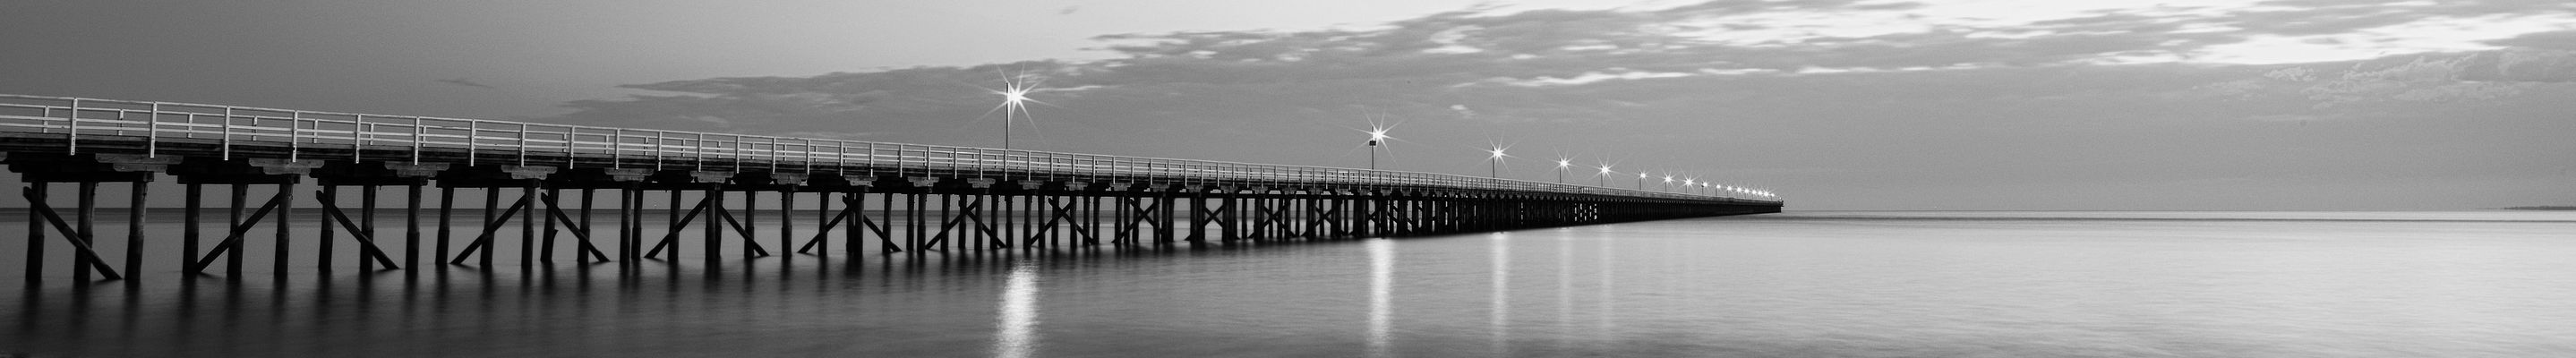 URANGAN PIER. longexposure, pier, blackwhite, queensland, harveybay. buy photo